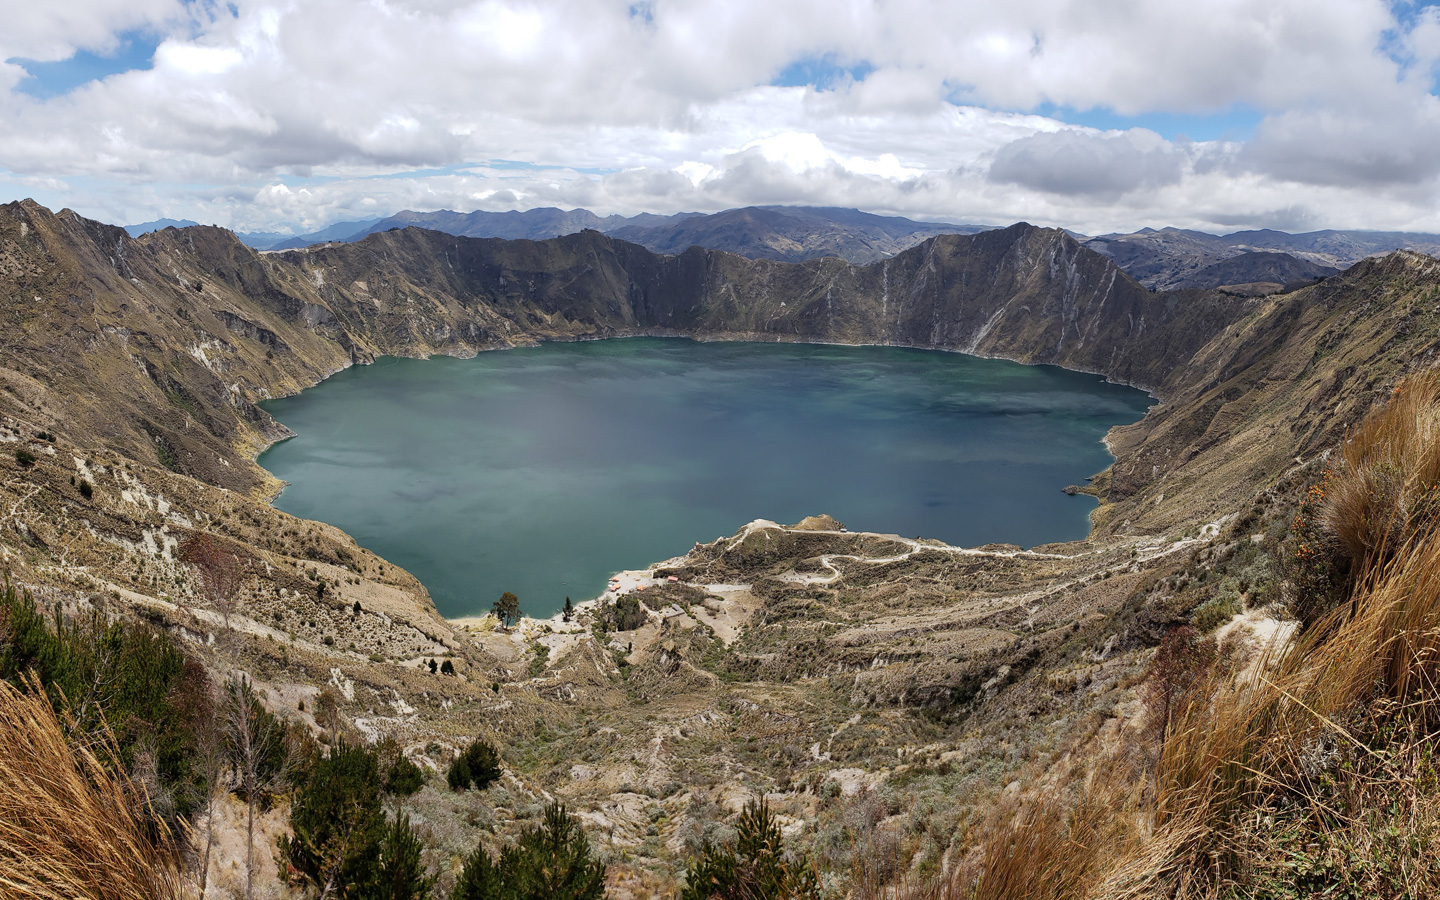 A view of the Quilotoa Crater before hiking down the trail